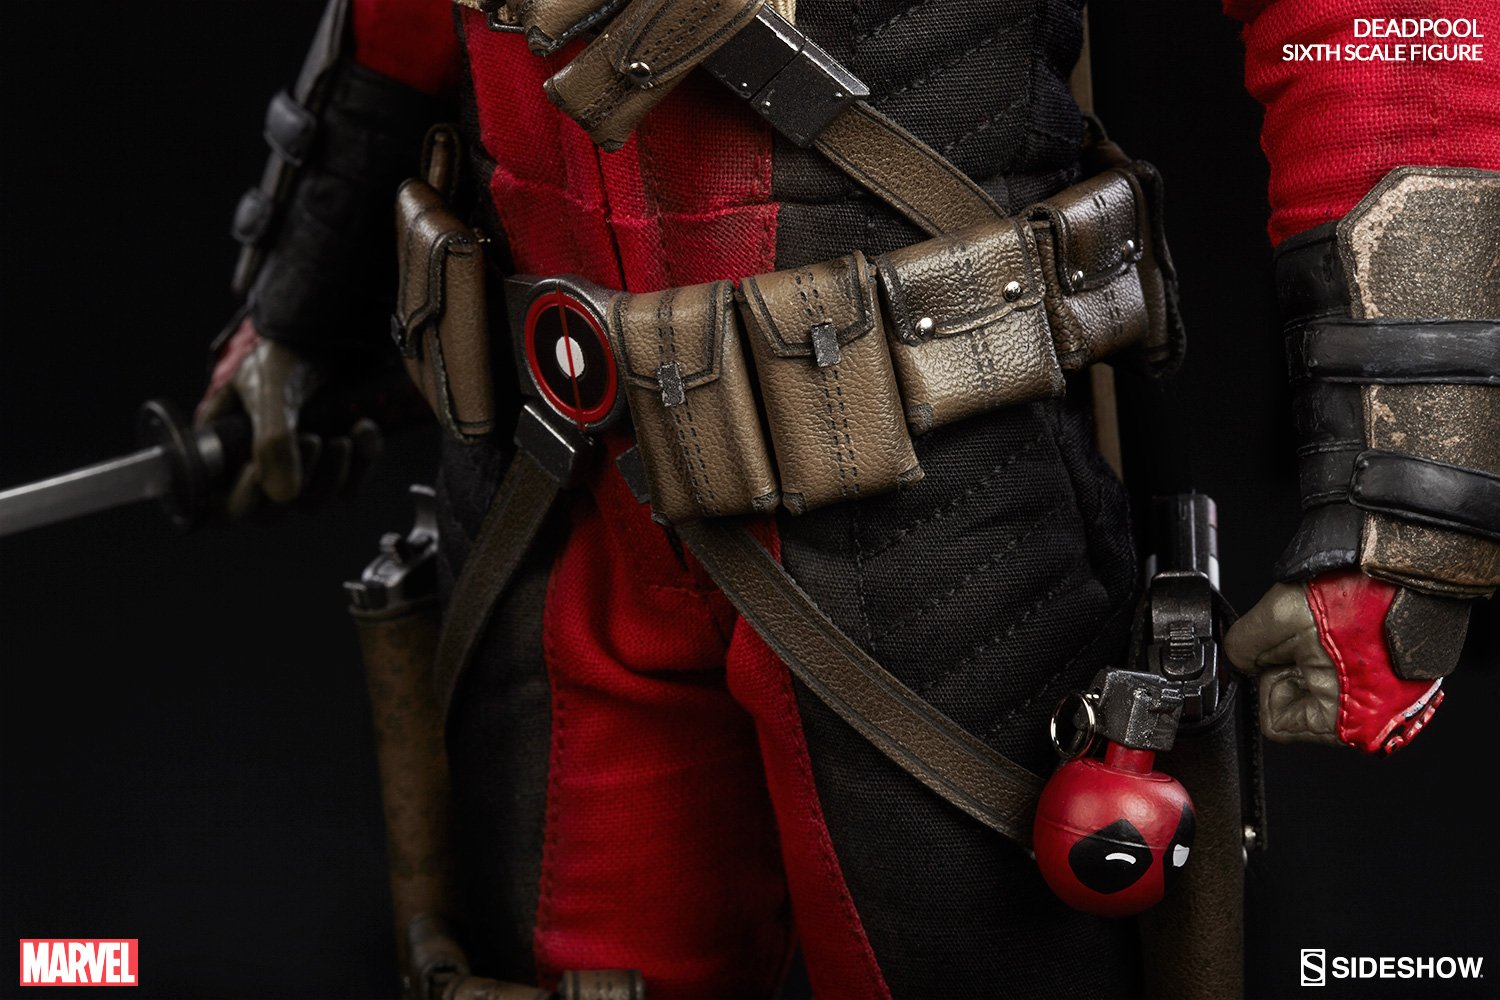 deadpool-sixth-scale-marvel-100178-09.jpg